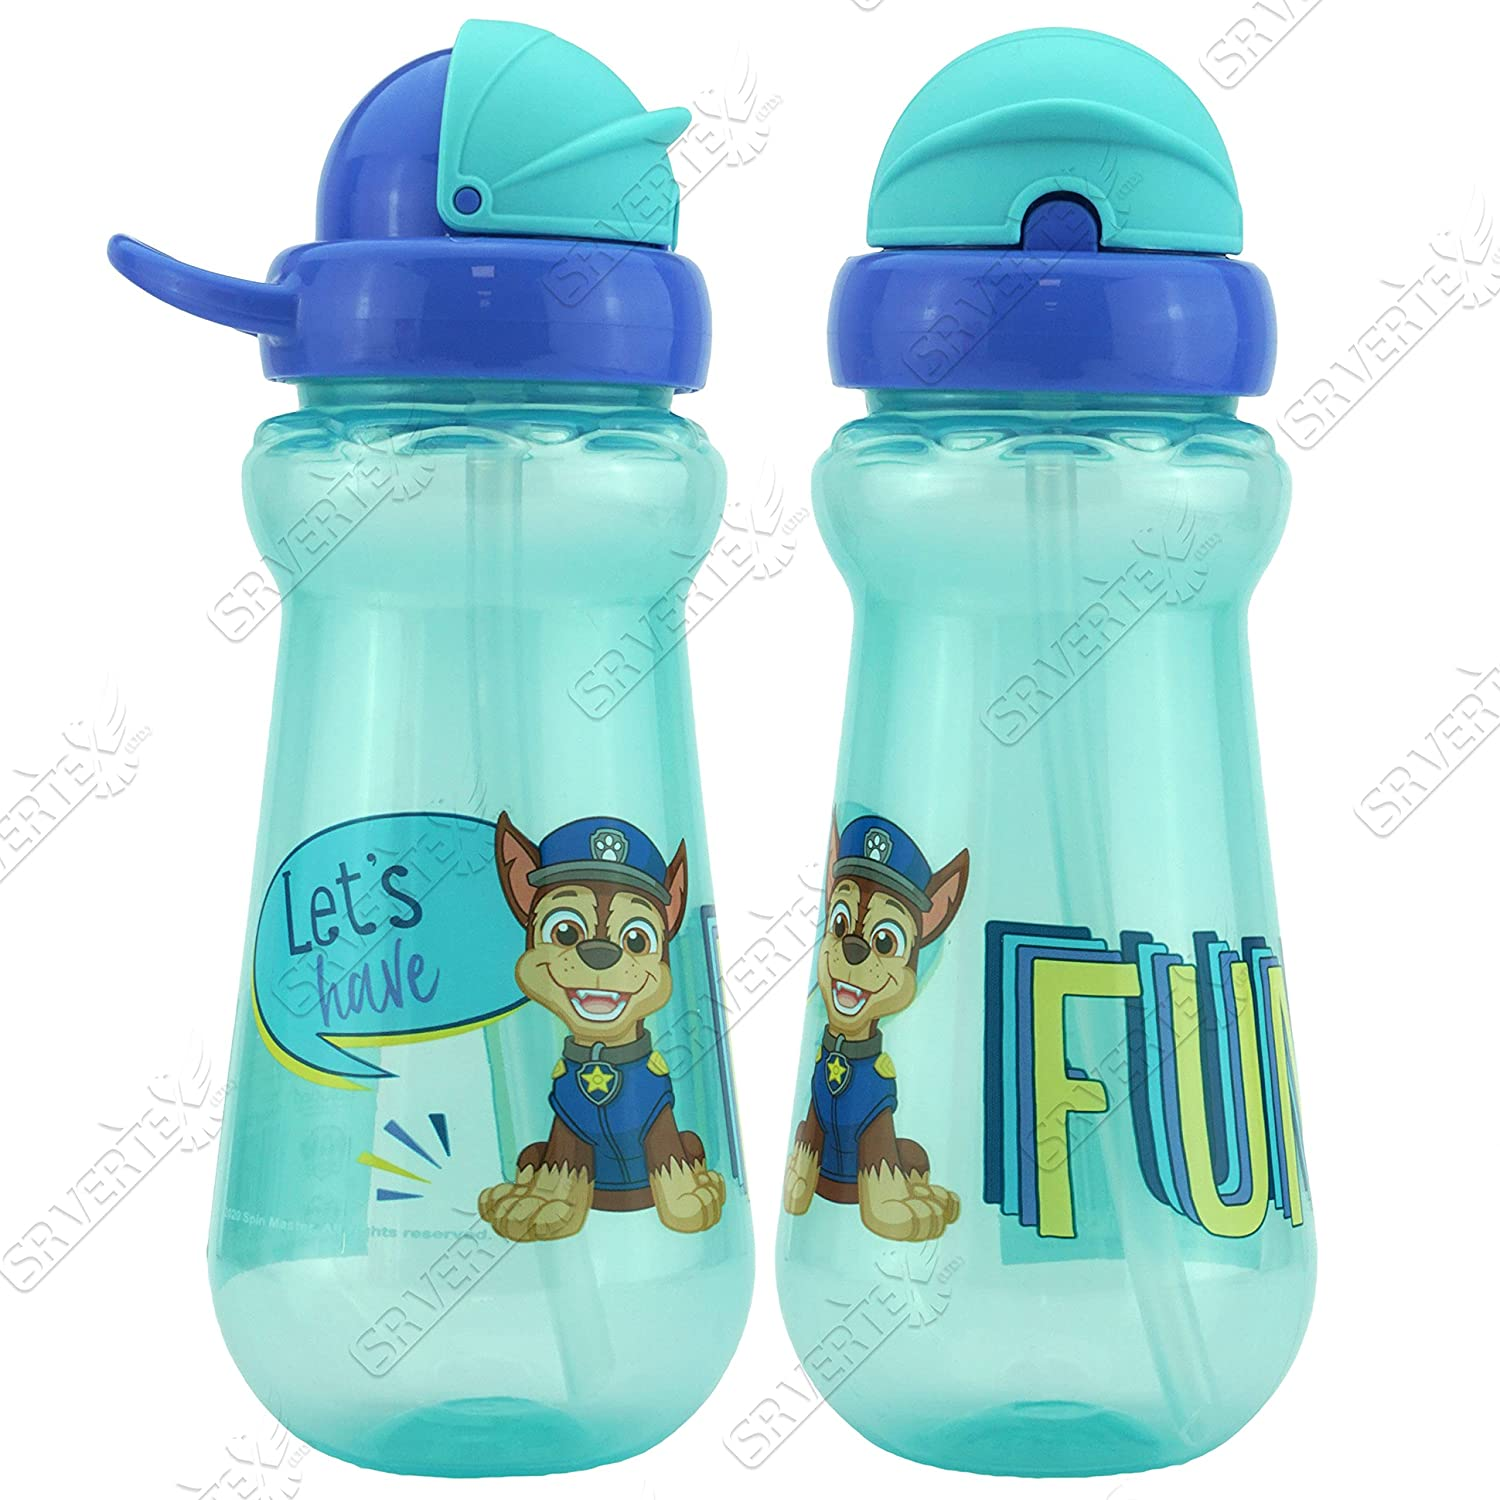 SRV Hub/® 350 ml Straw Sipper Water Bottle with Flip Top for Kids Leak Proof Durable and Reusable PAW Patrol Chase Straw Sipper Blue BPA Free School Ideal for Sports Gift